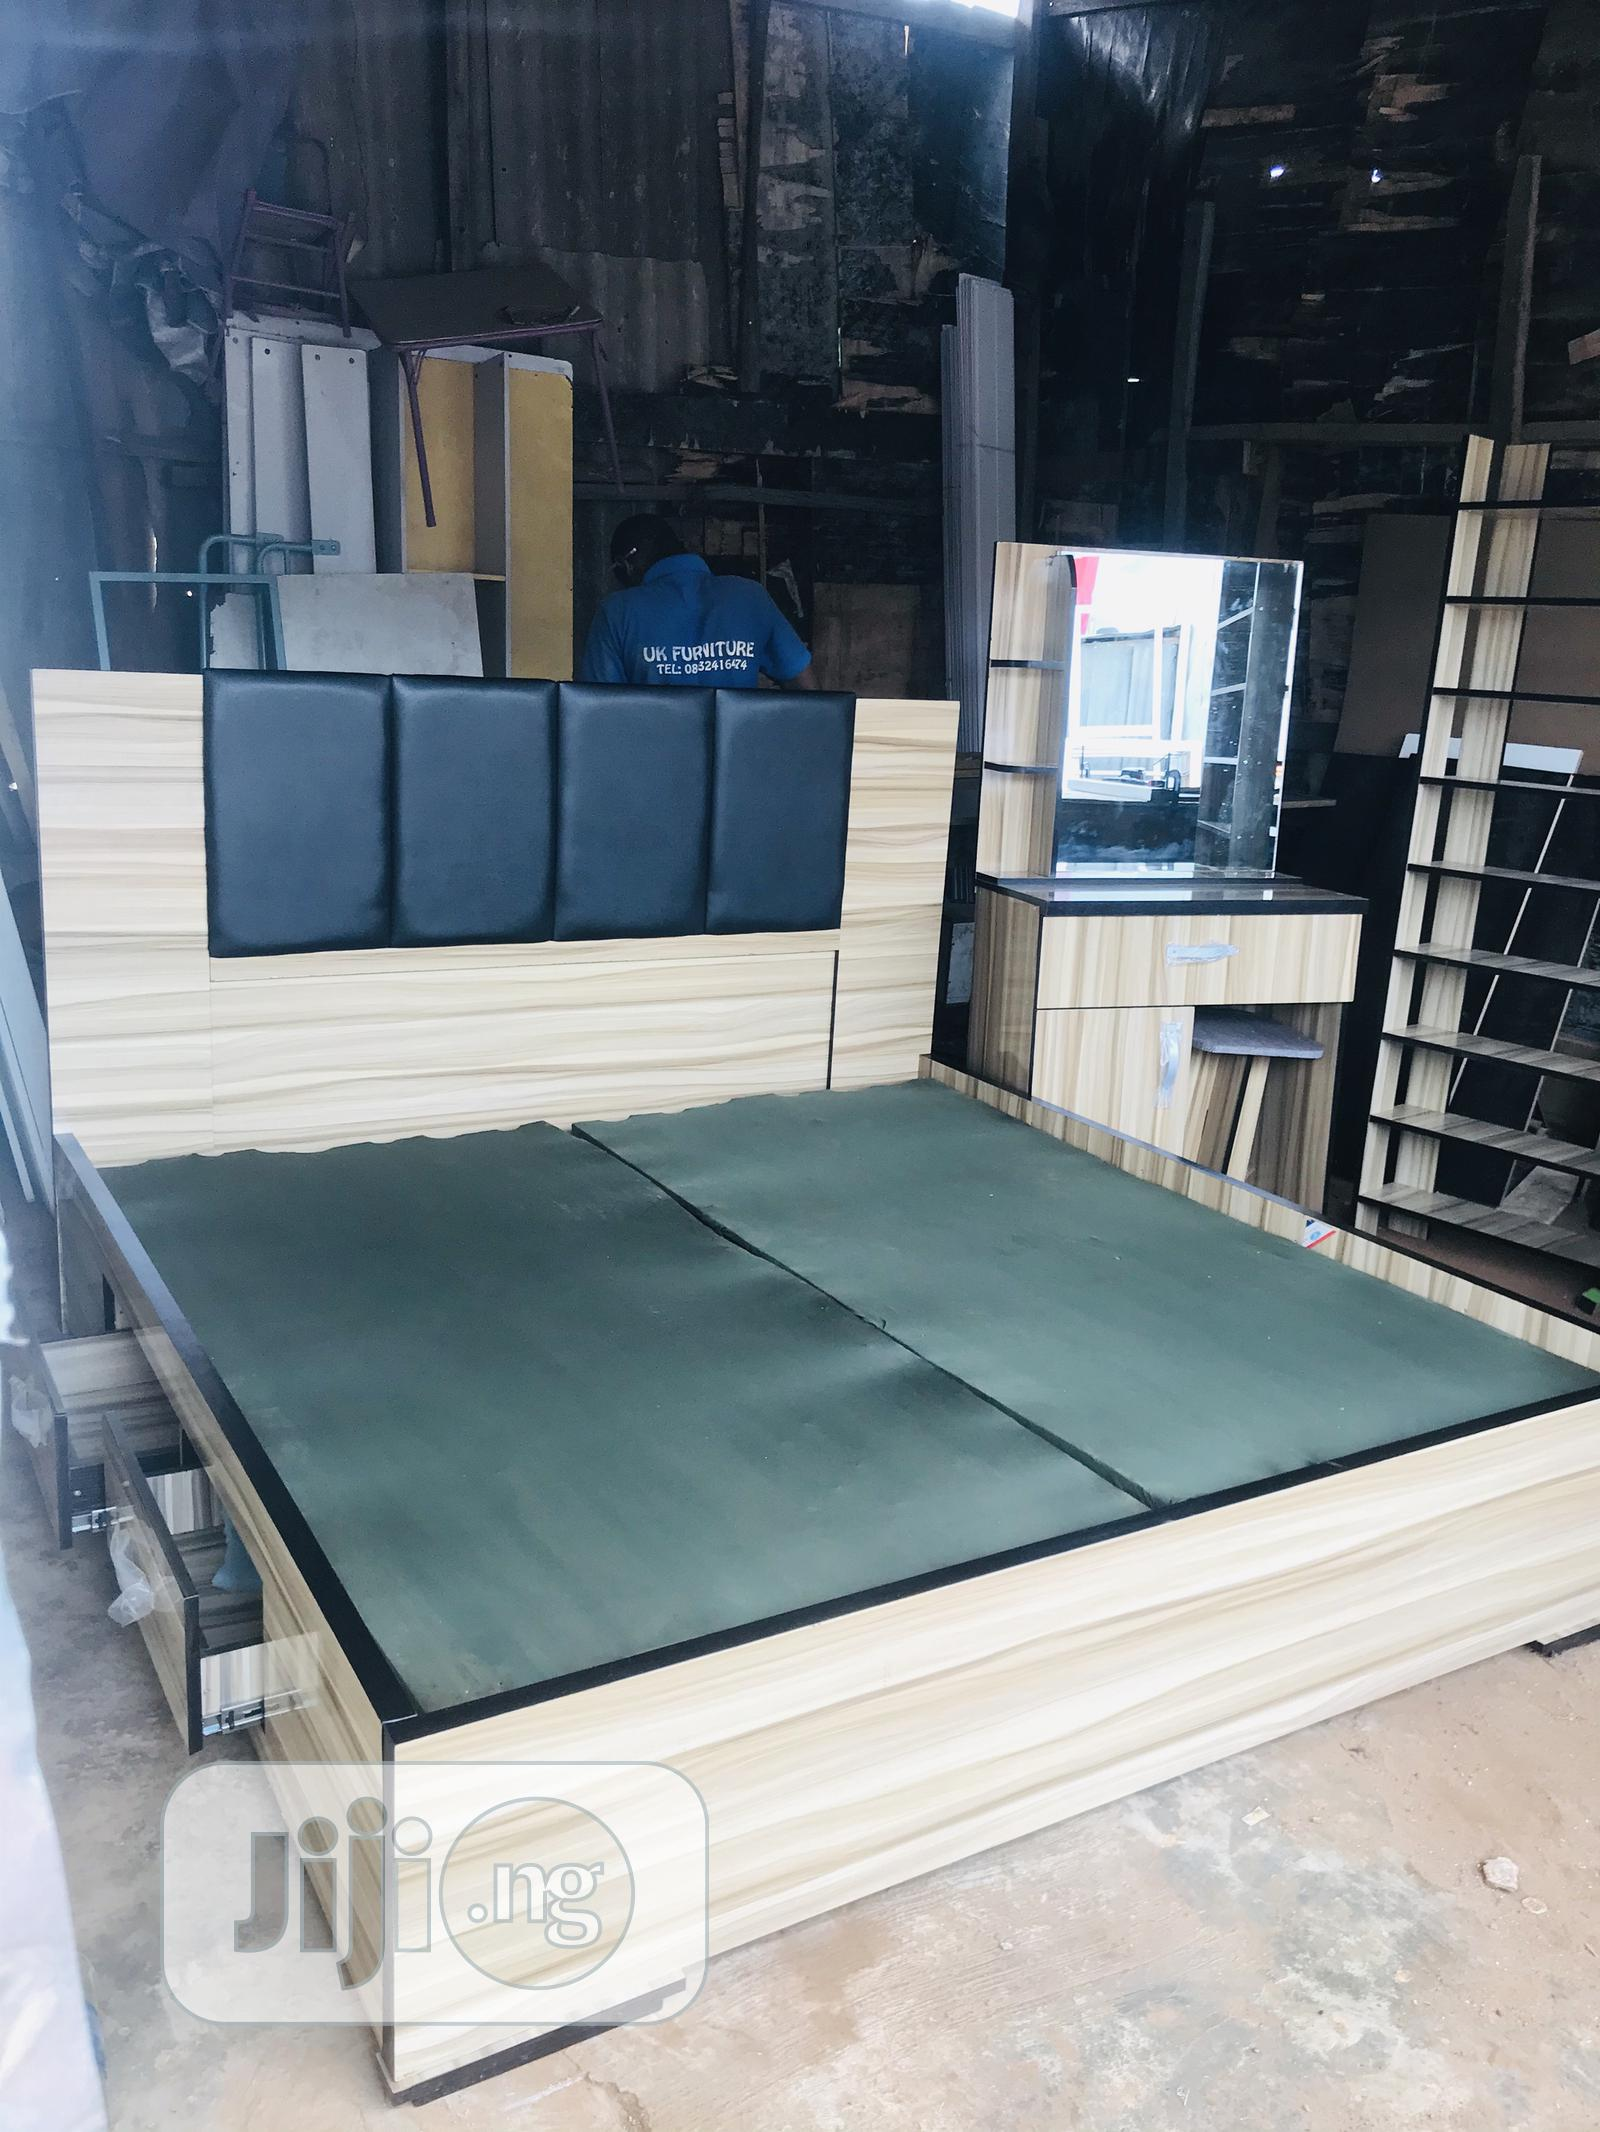 New Bed Frame 6by6 With Side Drawers Very Solid